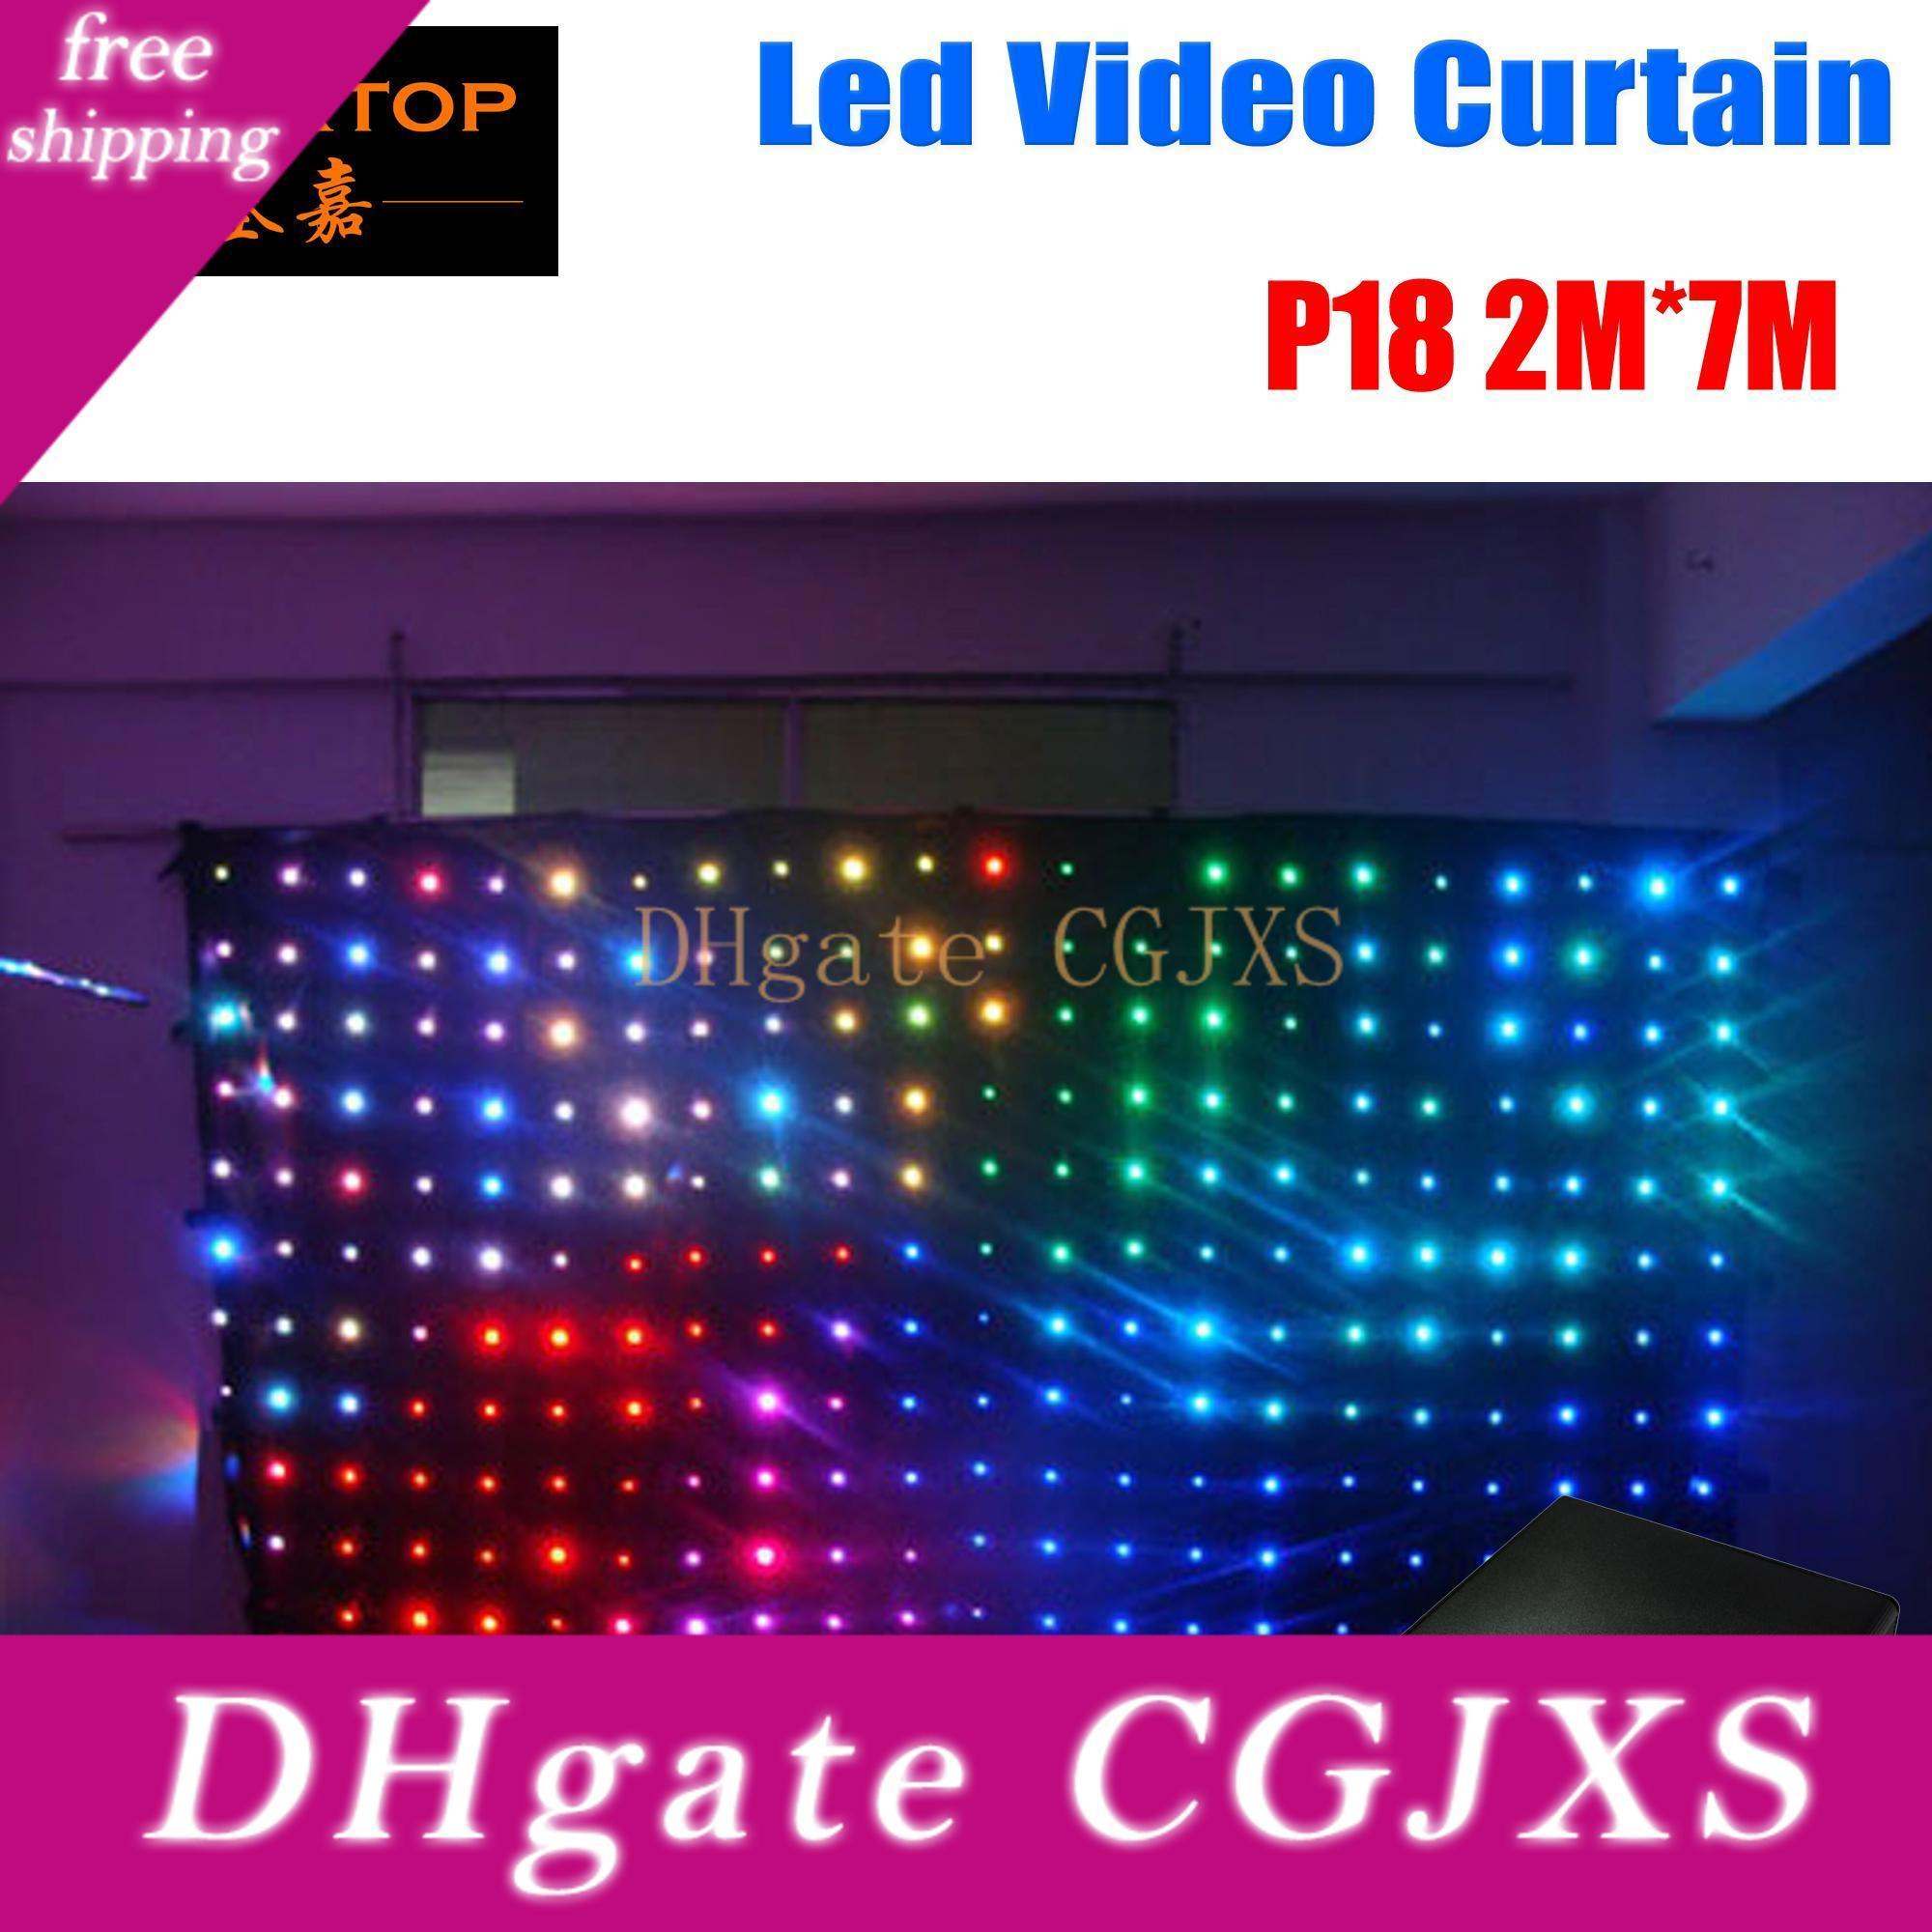 P18 2m *7m Fire Proof Led Video Curtain With On /Off Line Controller For Dj Wedding Backdrops 90v -240v Tricolor Light Curtain